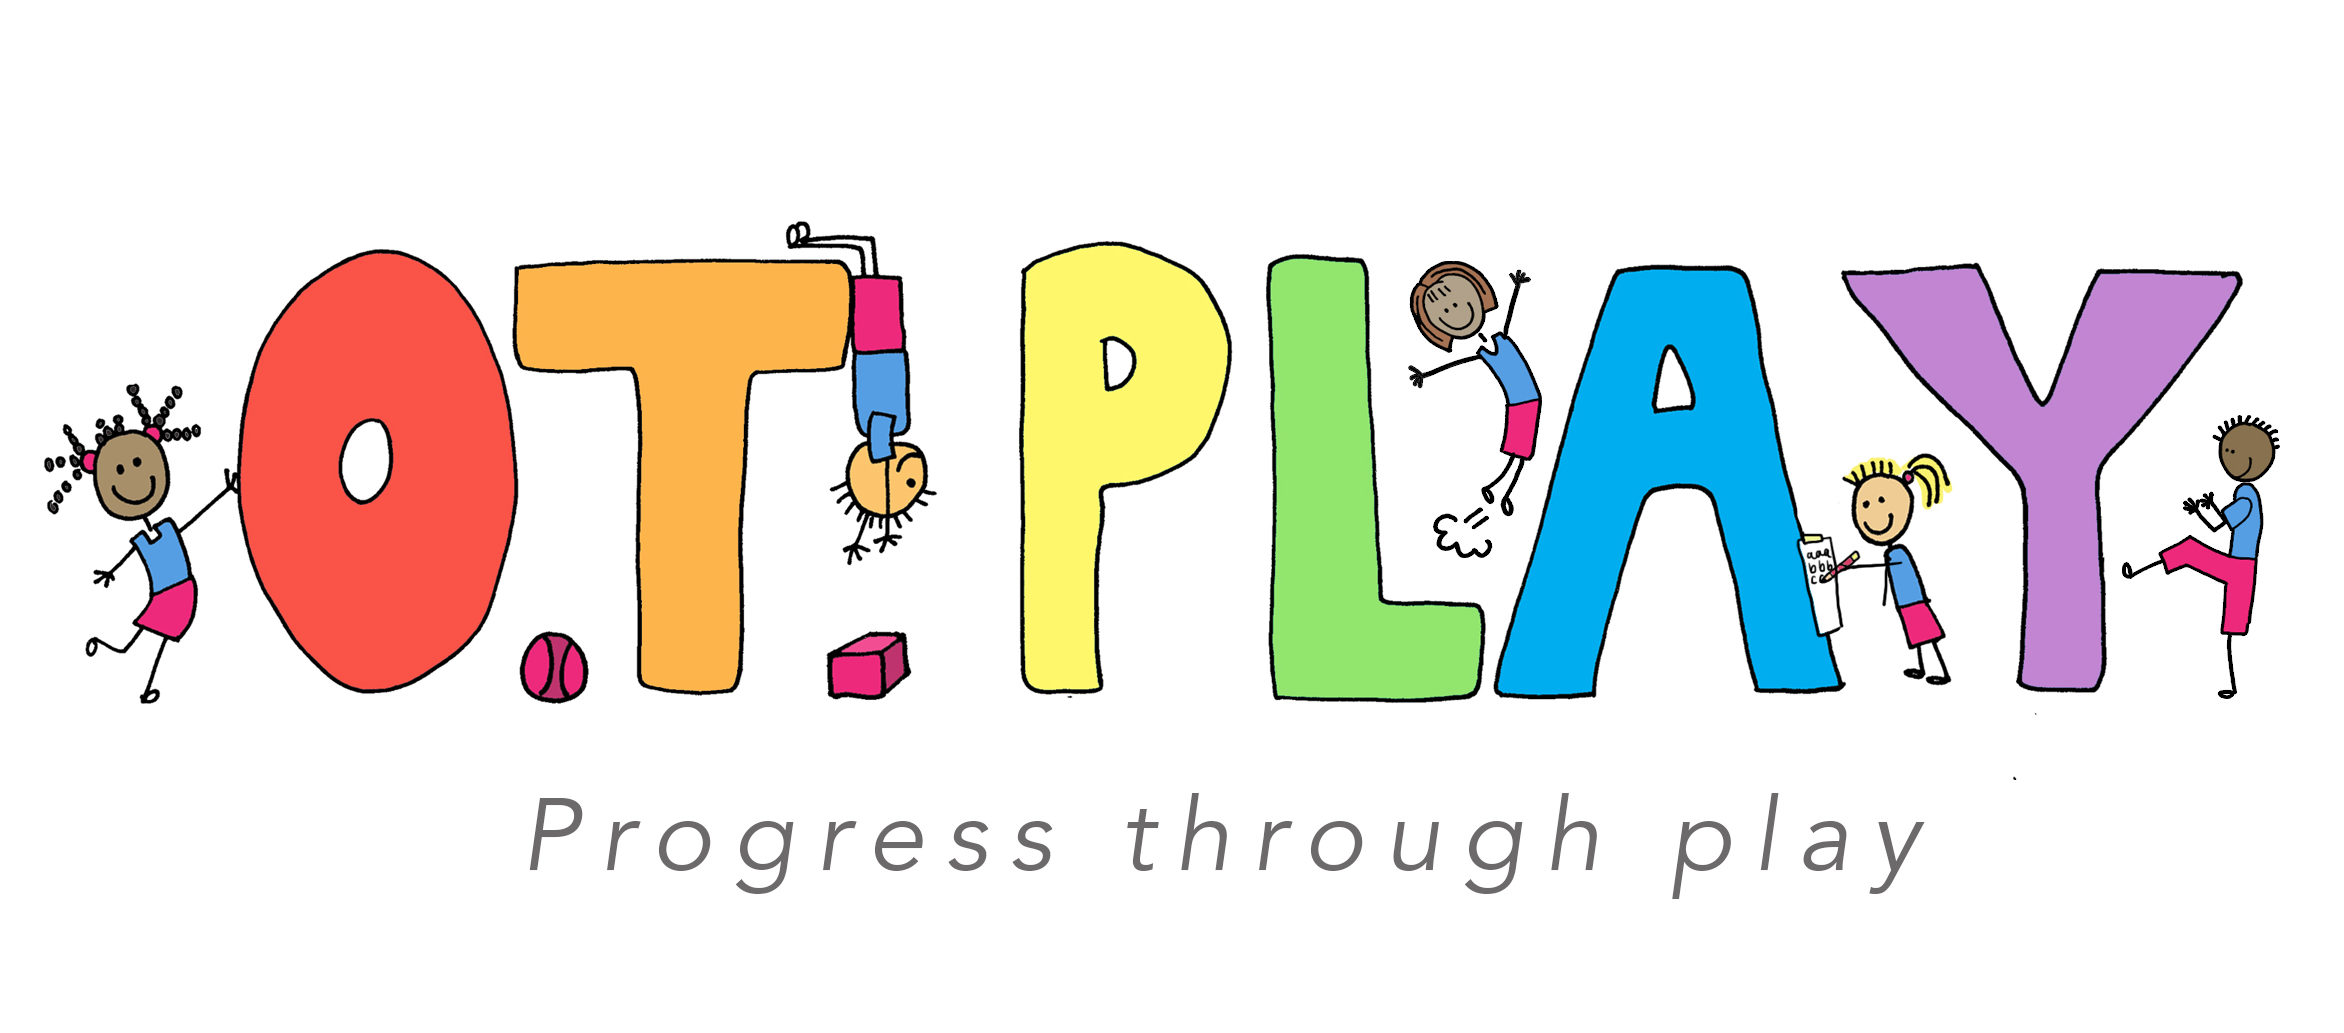 Progress Through Play